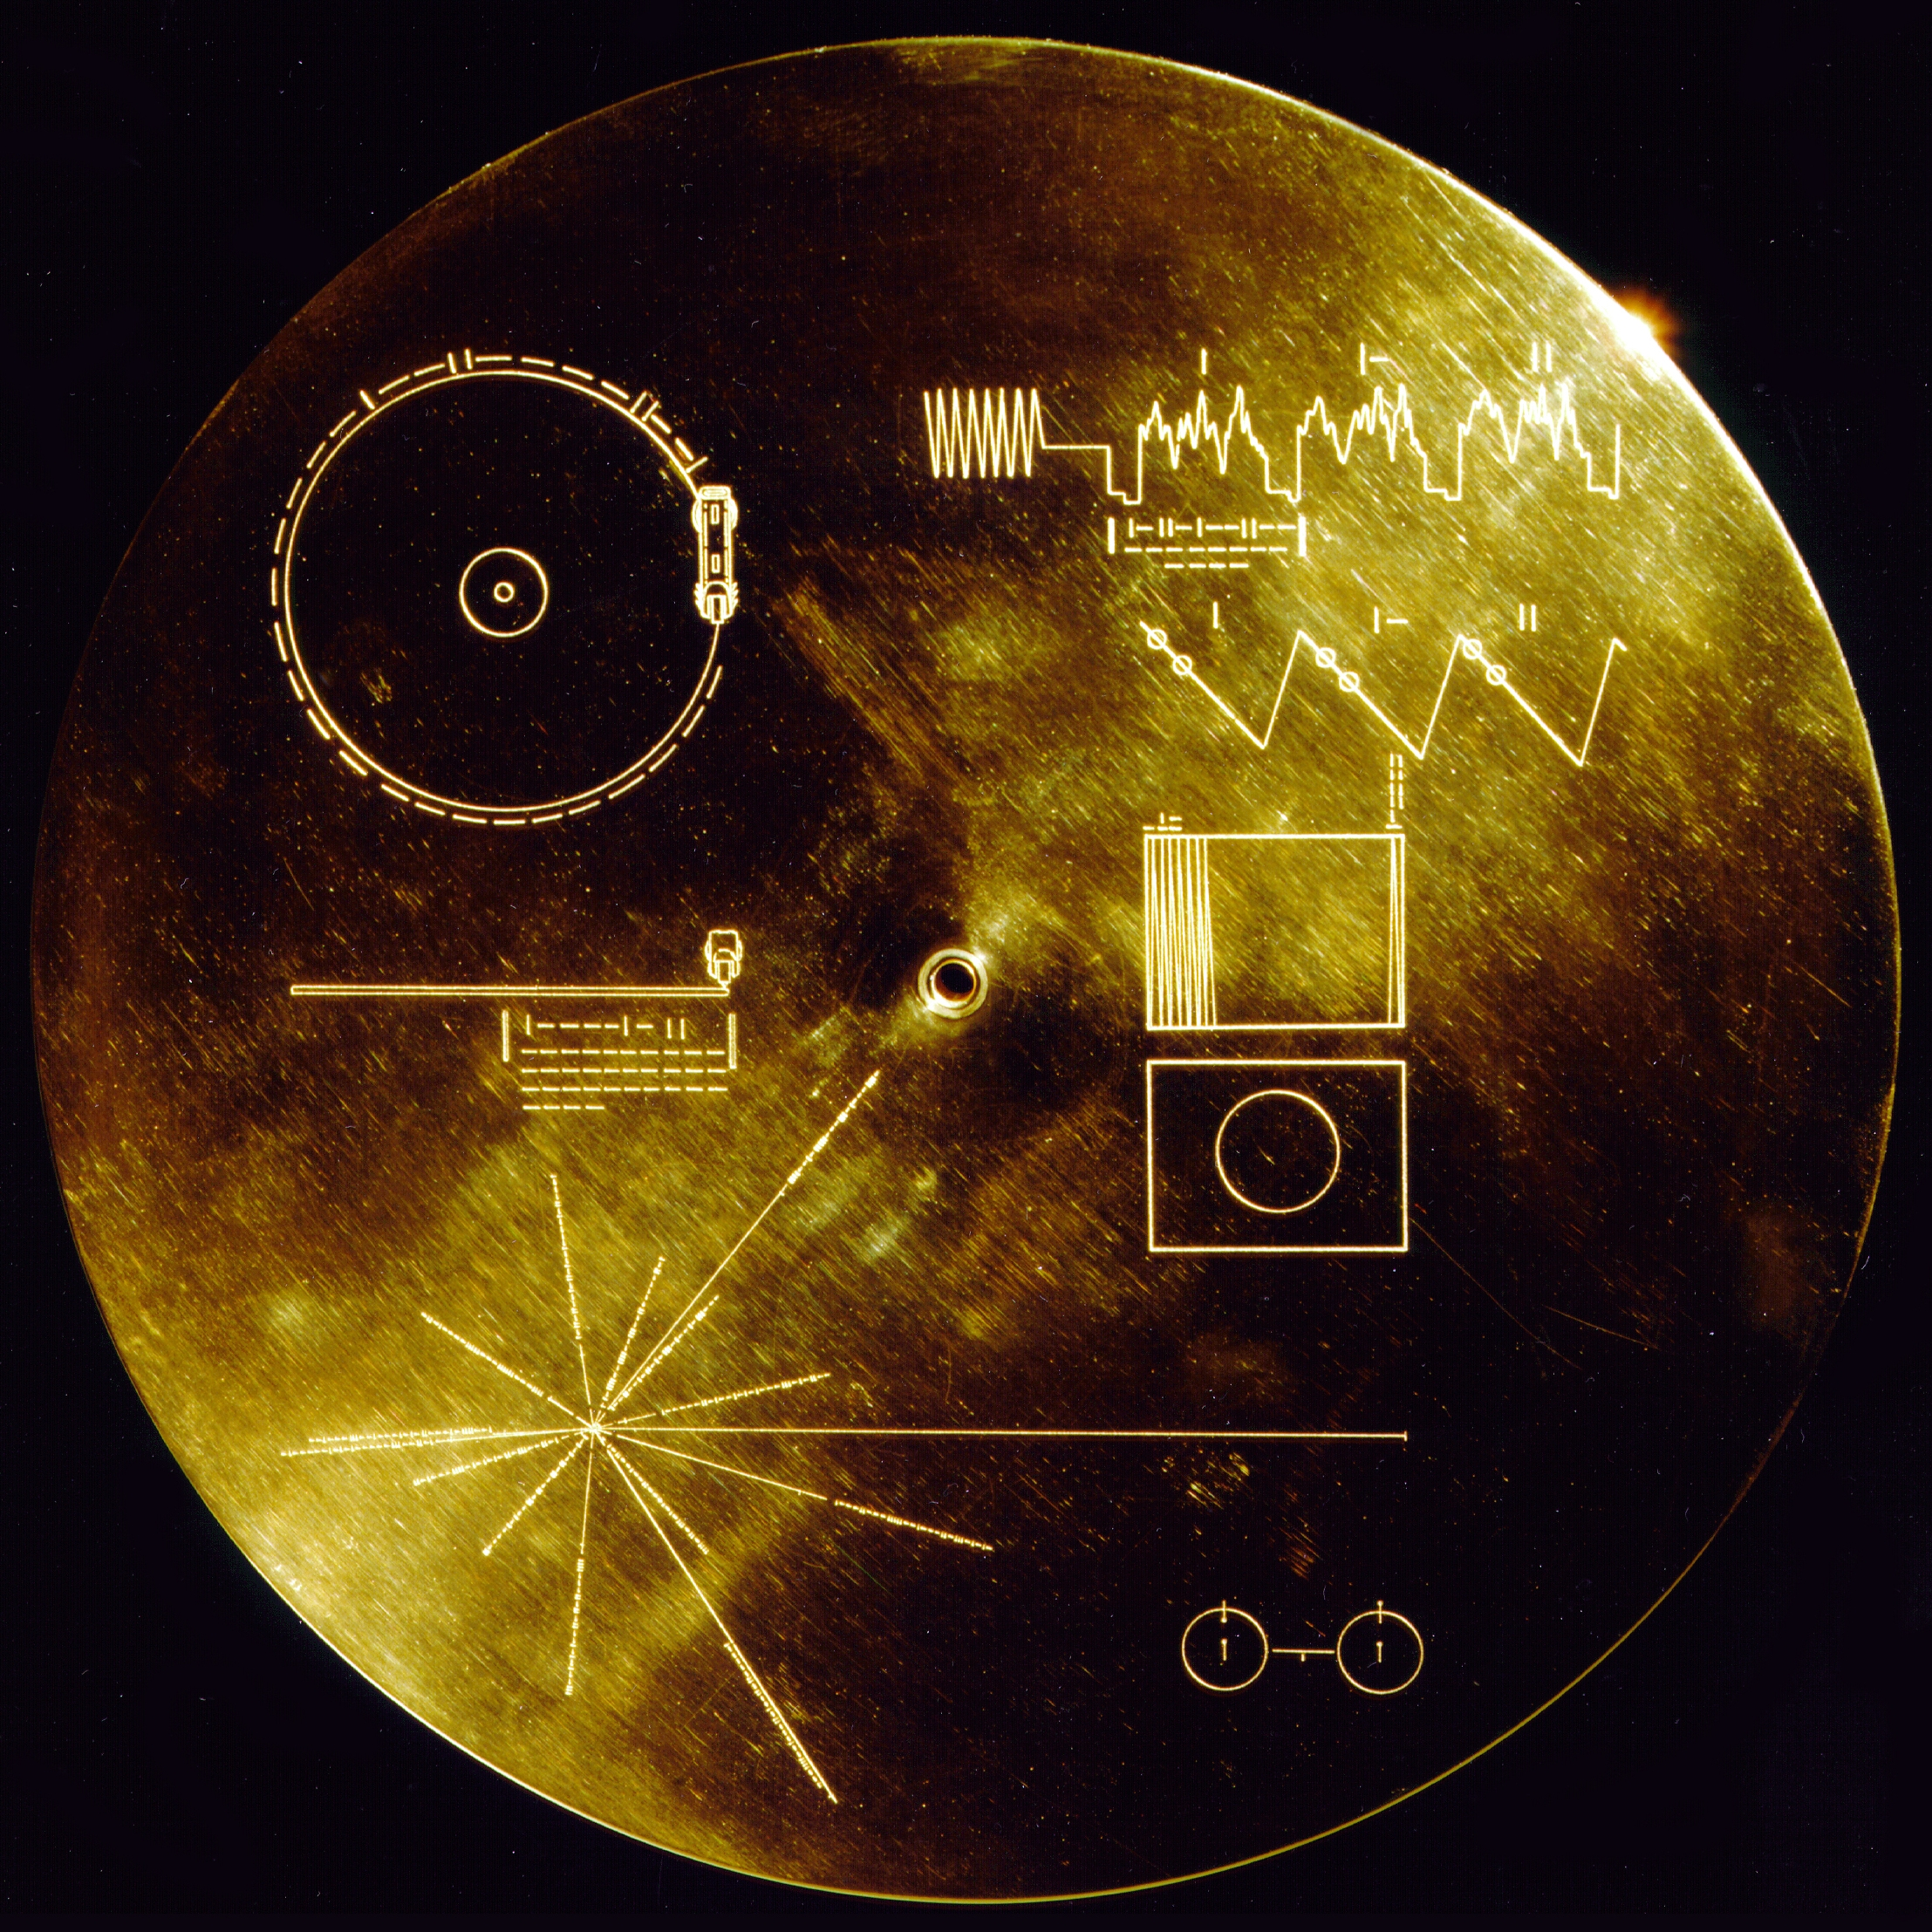 """The """"Golden Record"""" carried by the Voyager probes."""